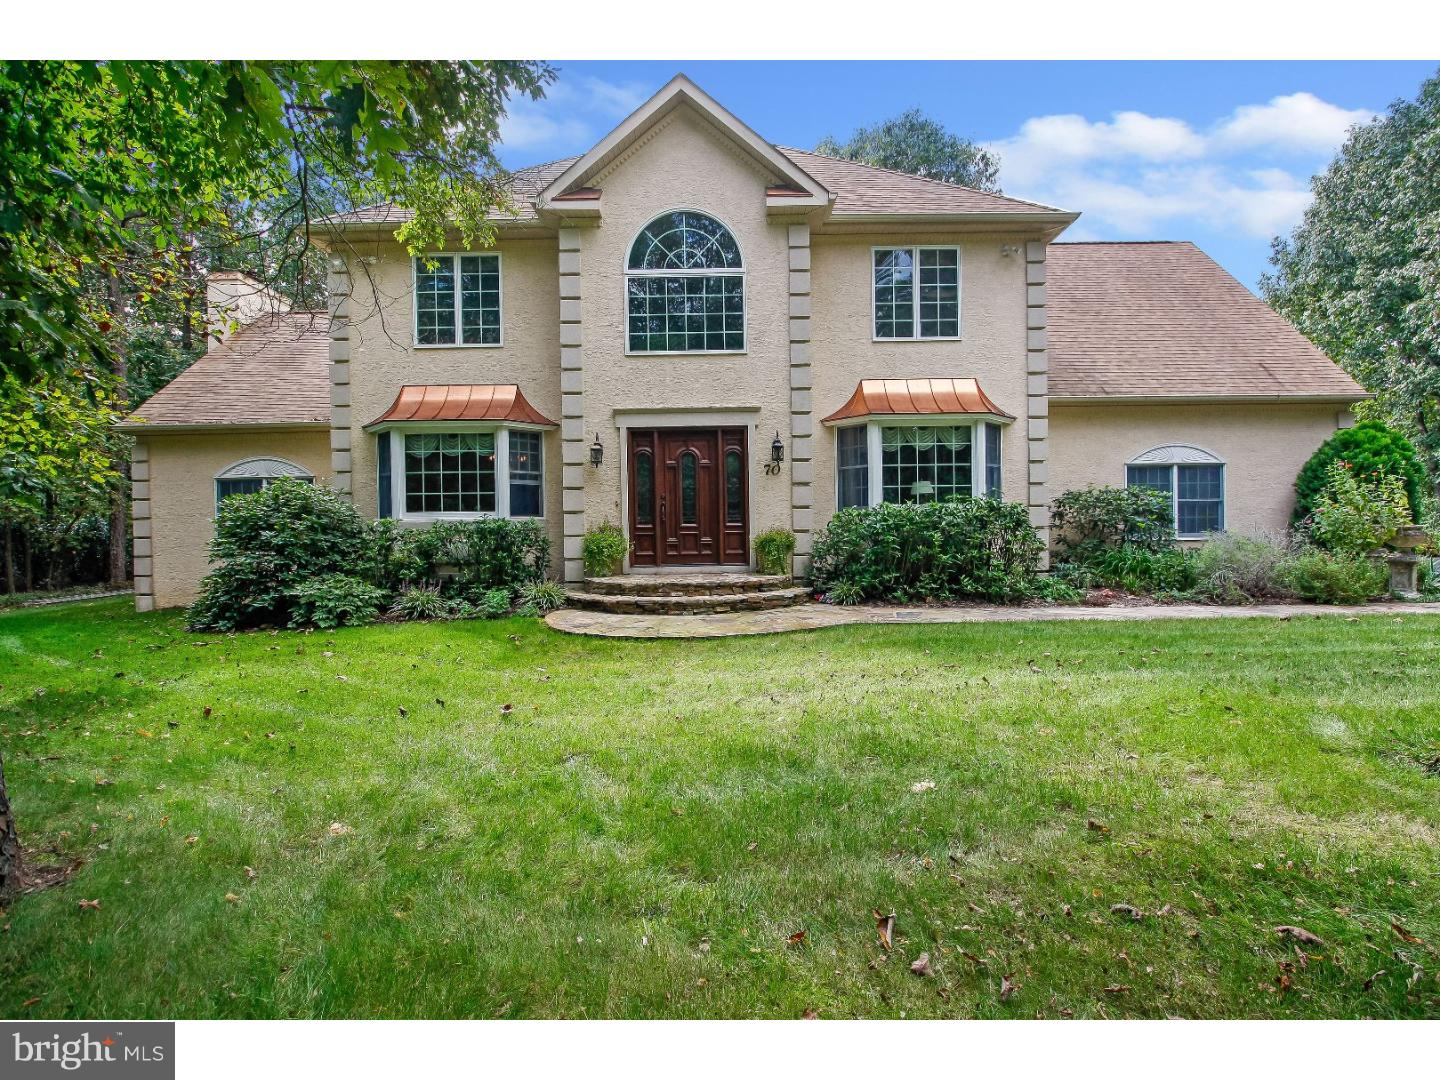 Single Family Home for Sale at 70 GOTTLIEBS FIELD Road Medford Township, New Jersey 08055 United States